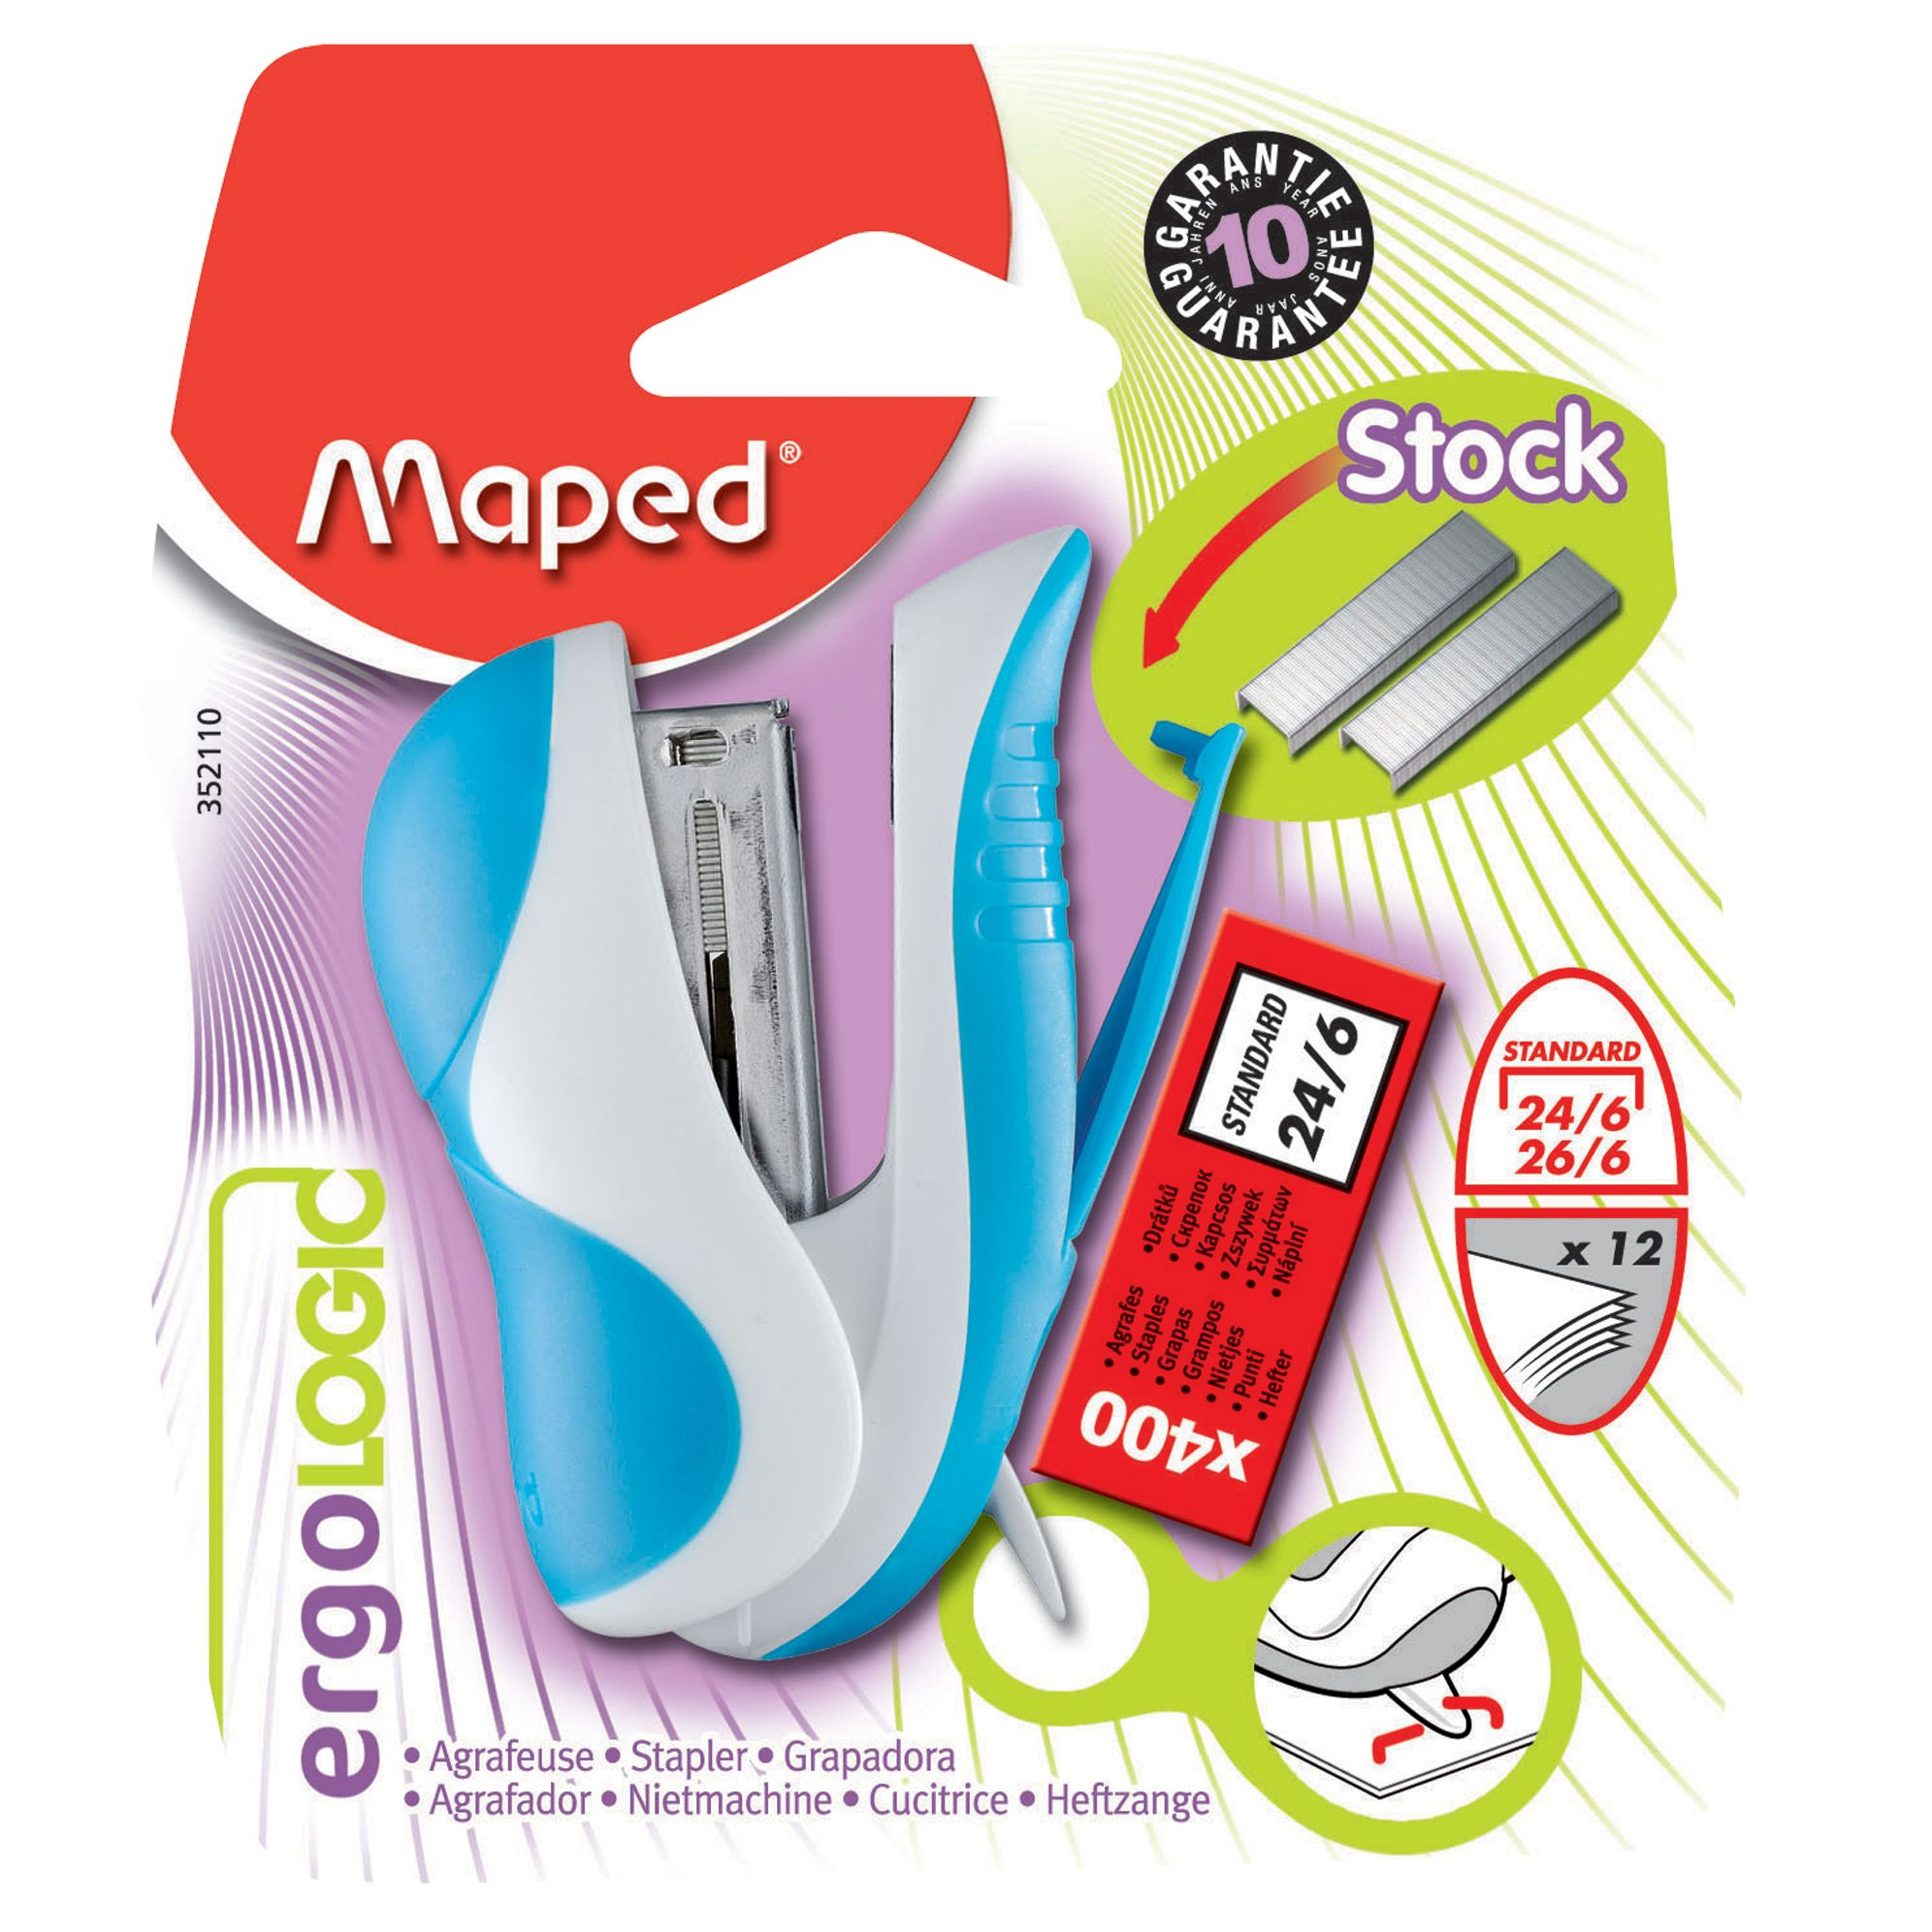 Maped Maped, Ergologic Mini Stapler